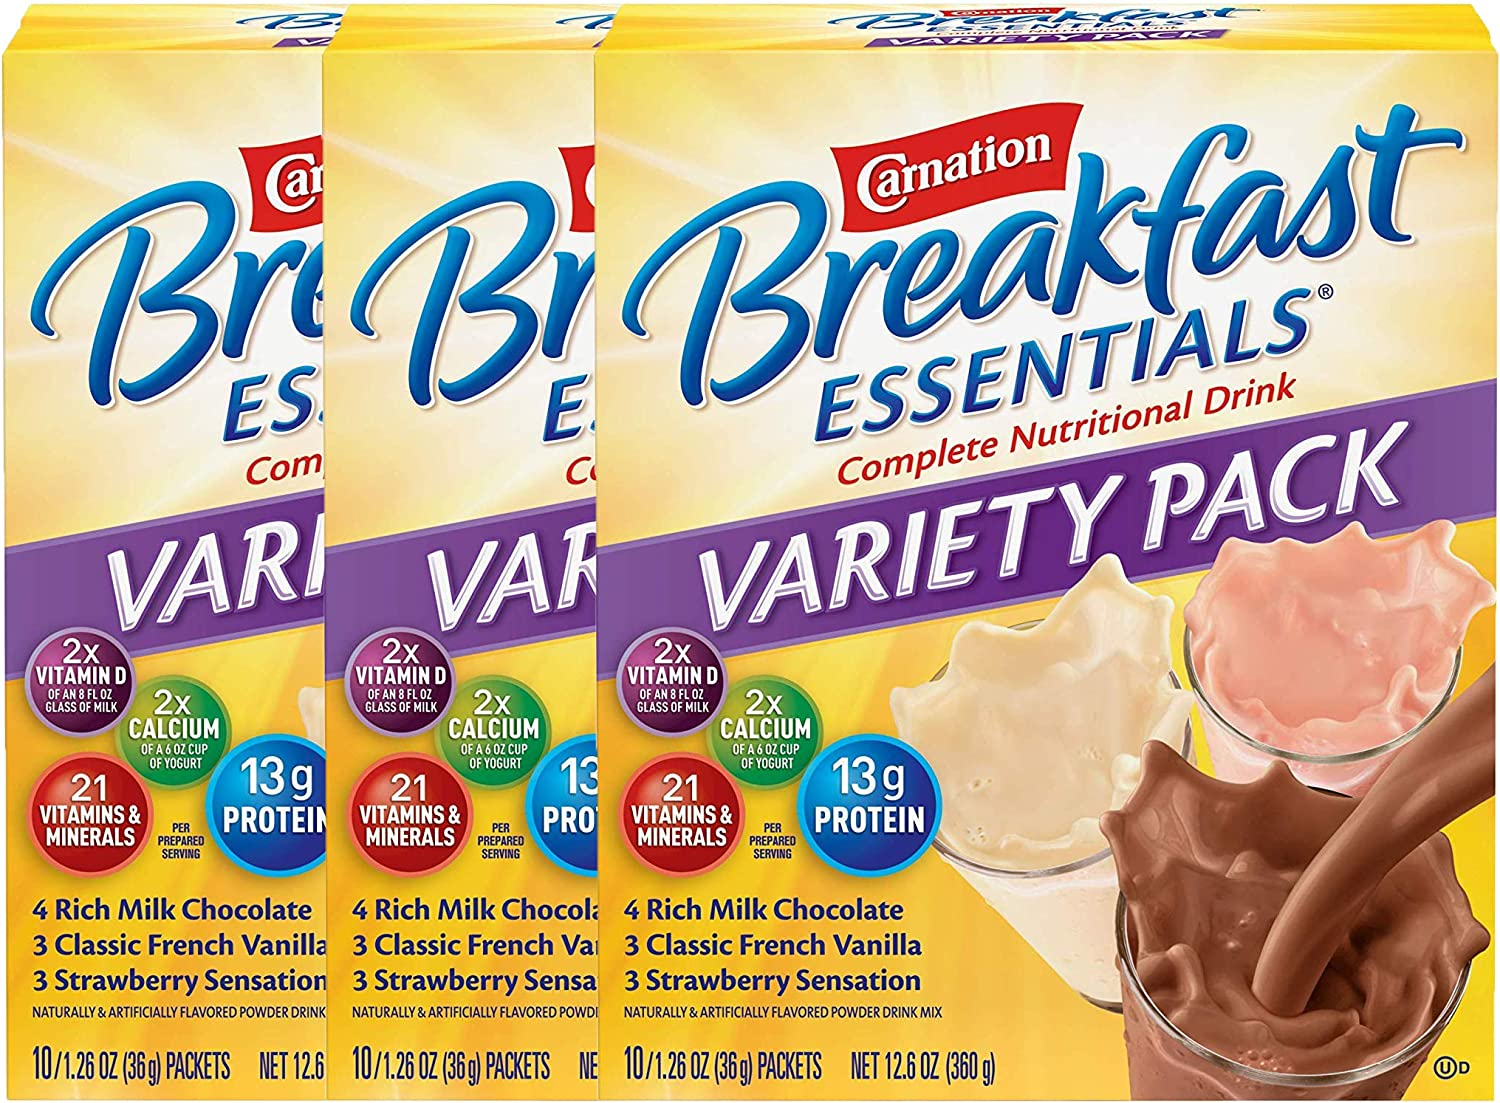 Carnation Breakfast Essentials Powder Drink Mix Variety Pack, Complete Nutritional Drink, 10 Count Box of 1.26 oz Packets (Pack - 3)